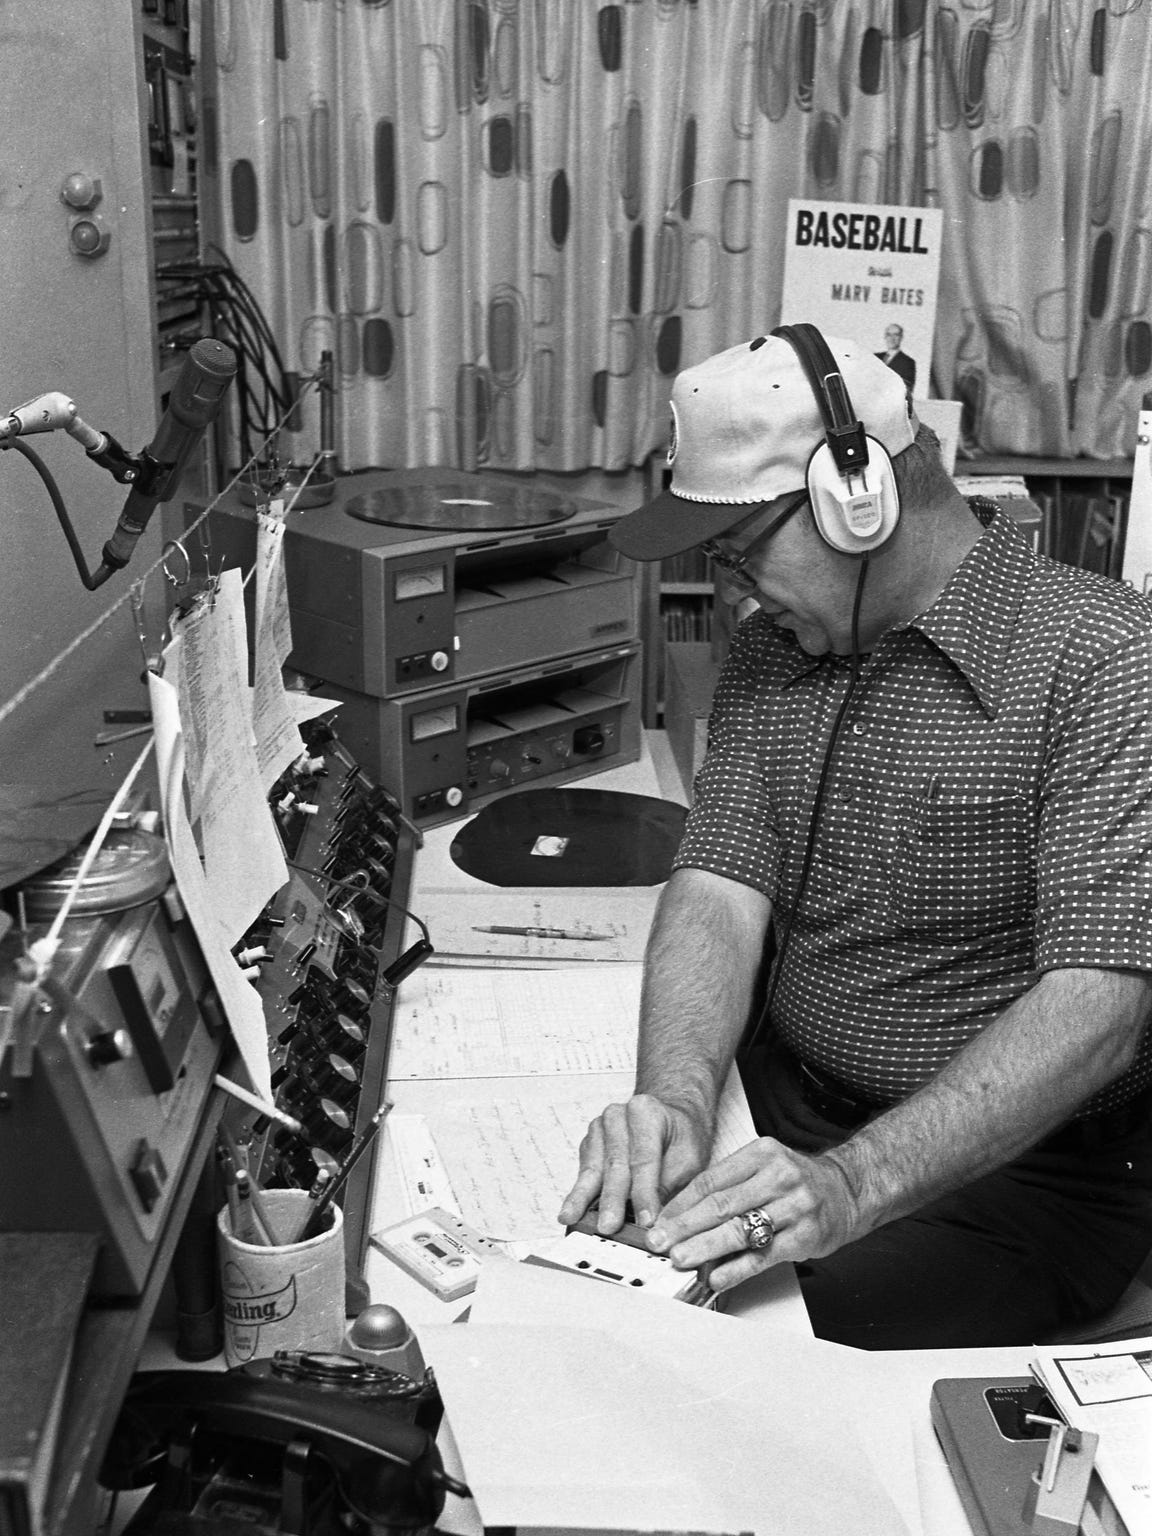 Marv Bates was a radio broadcaster for 30 years, most